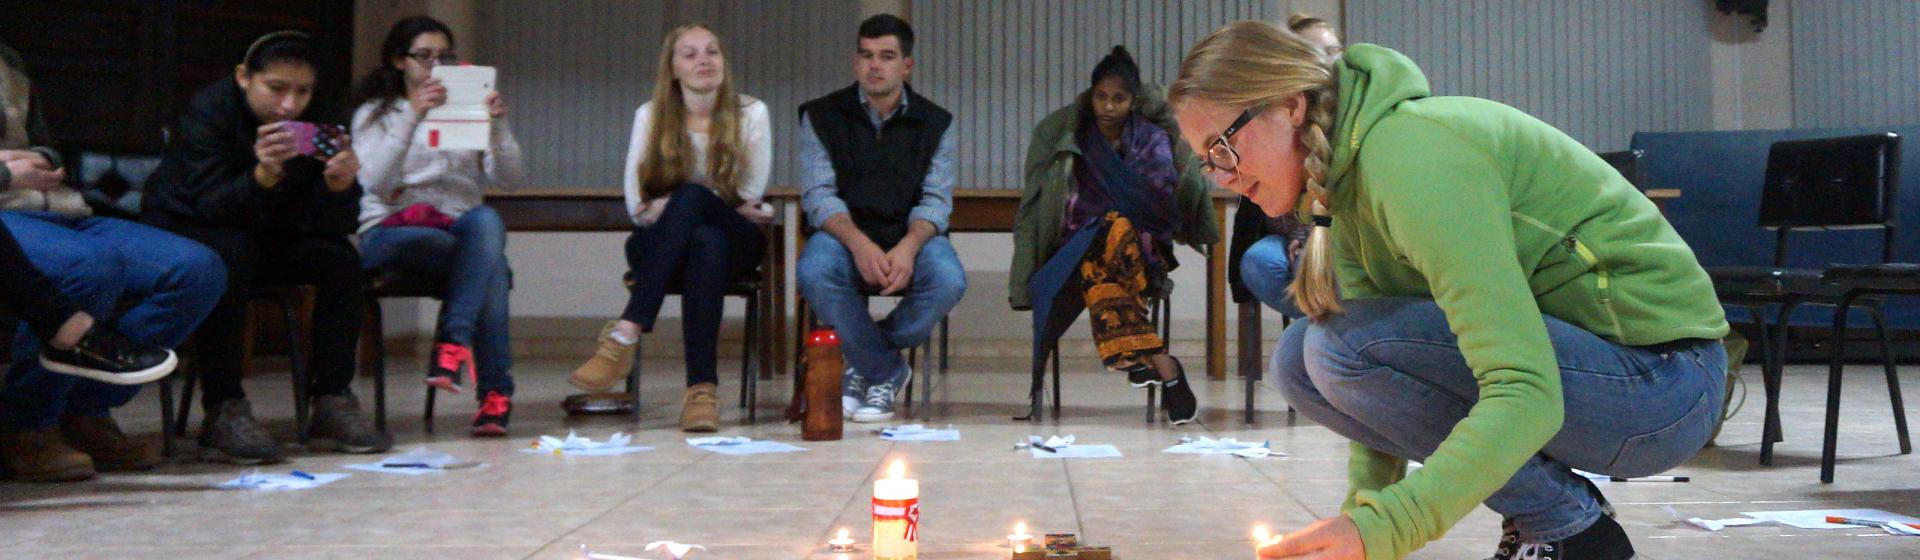 A participant at the international youth gathering in Brazil lights a candle